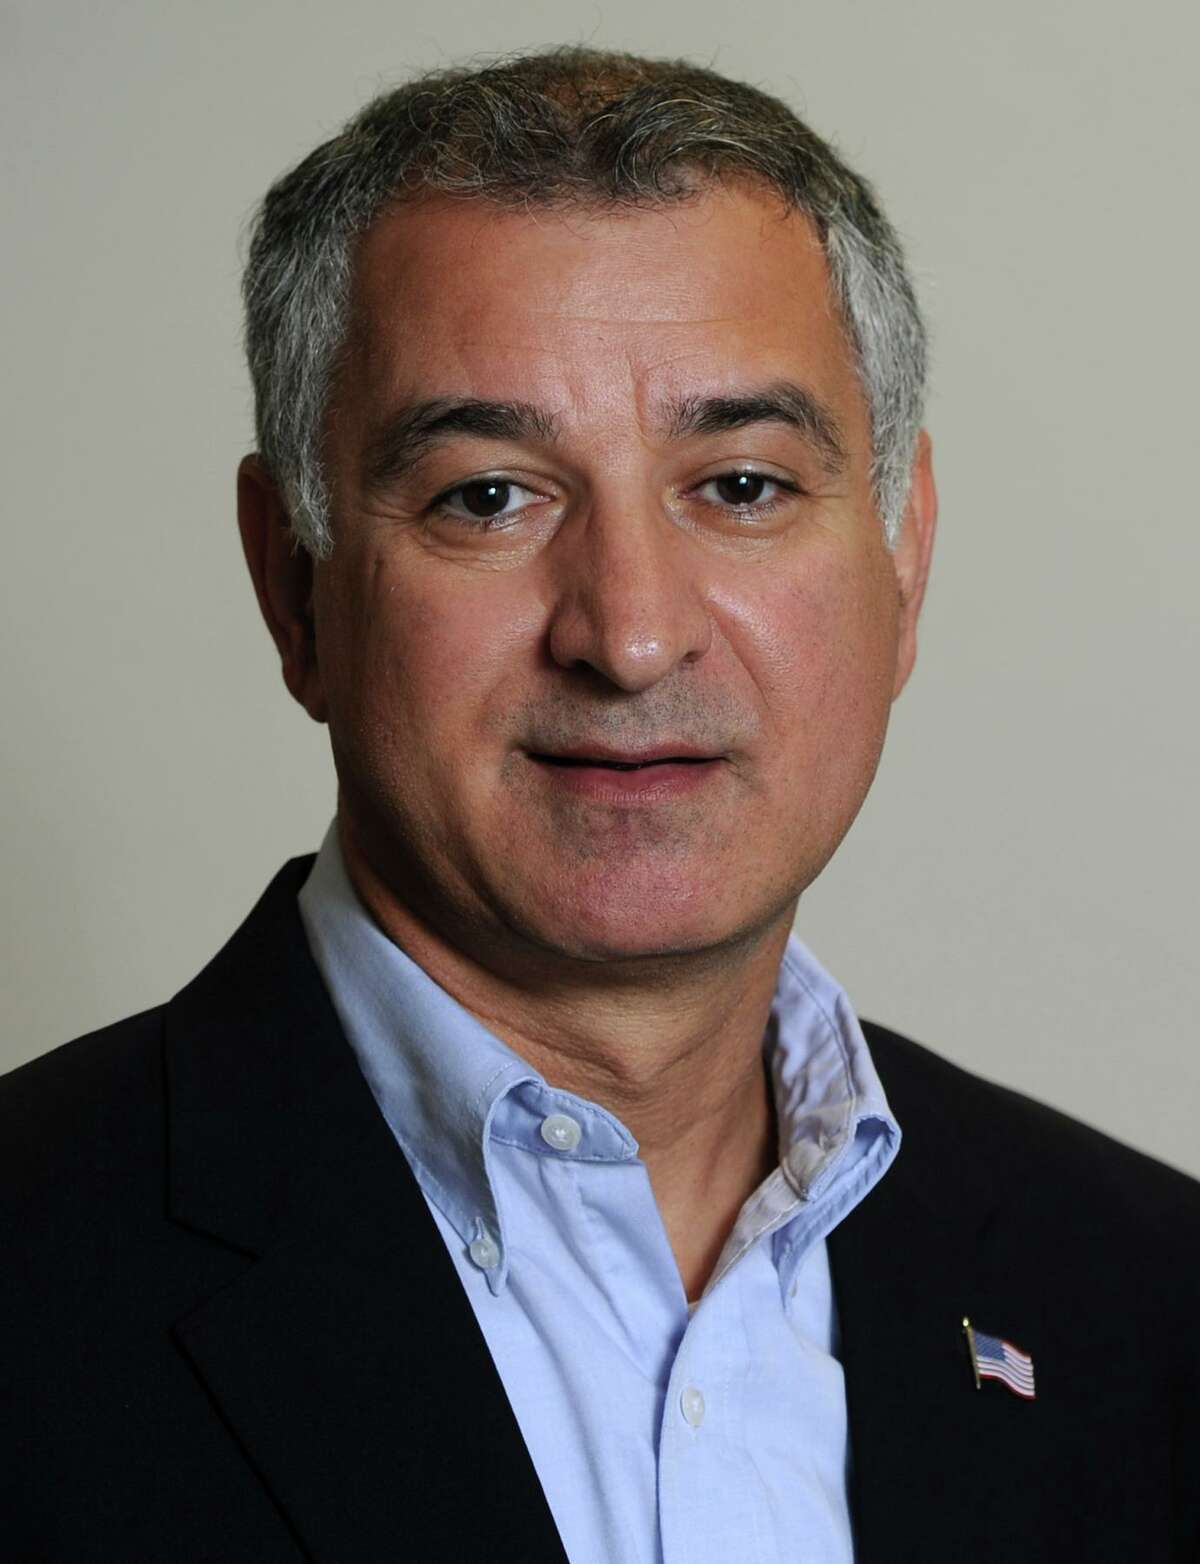 State Sen. Carlo Leone, D-Stamford, is co-chairman of the legislative Transportation Committee.